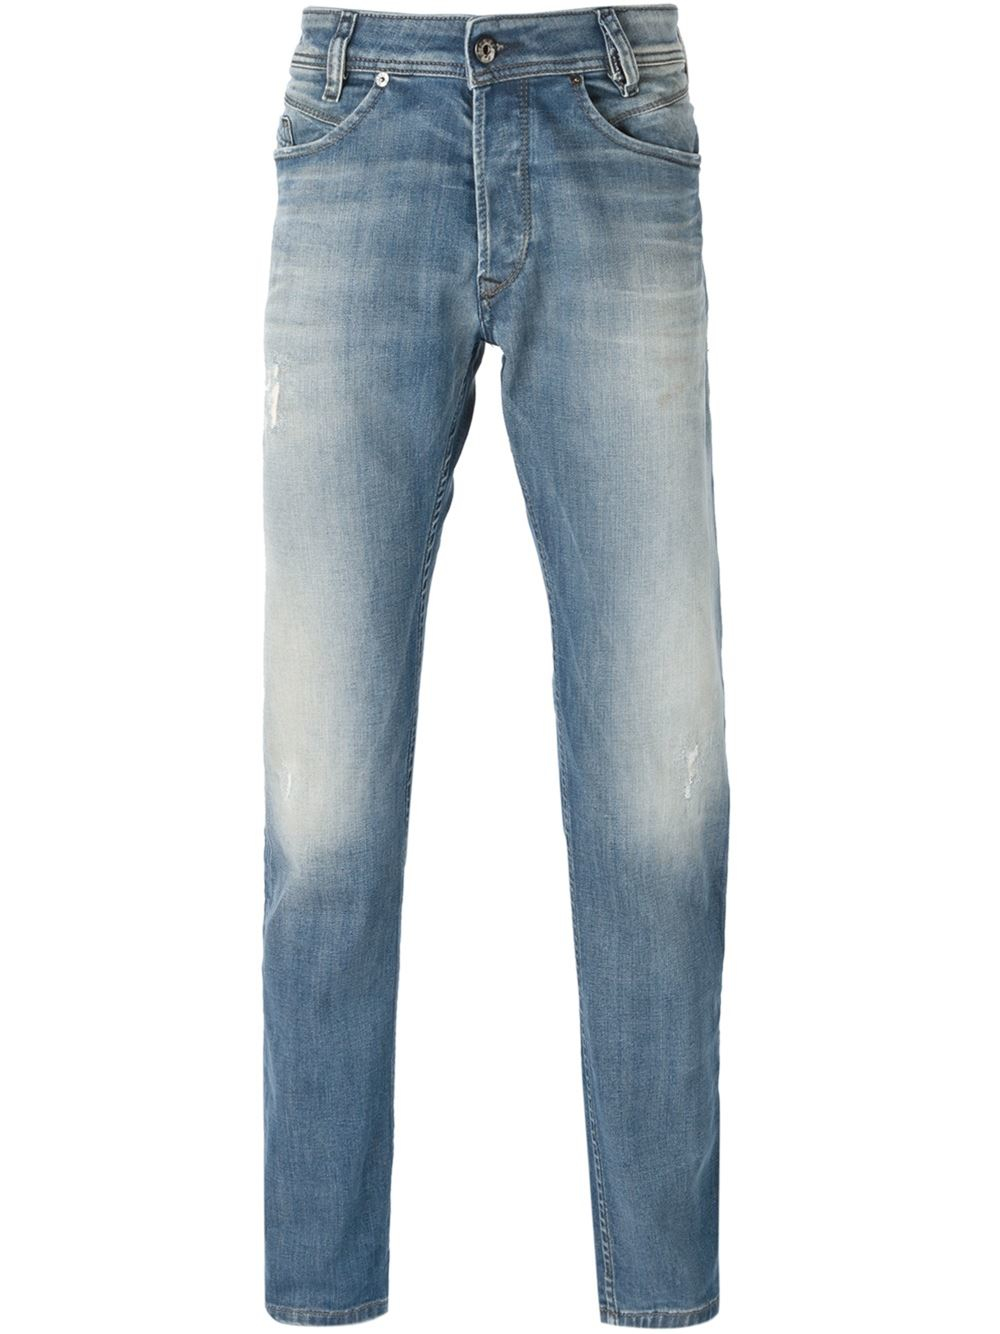 diesel 39 iakop 39 tapered jeans in blue for men lyst. Black Bedroom Furniture Sets. Home Design Ideas